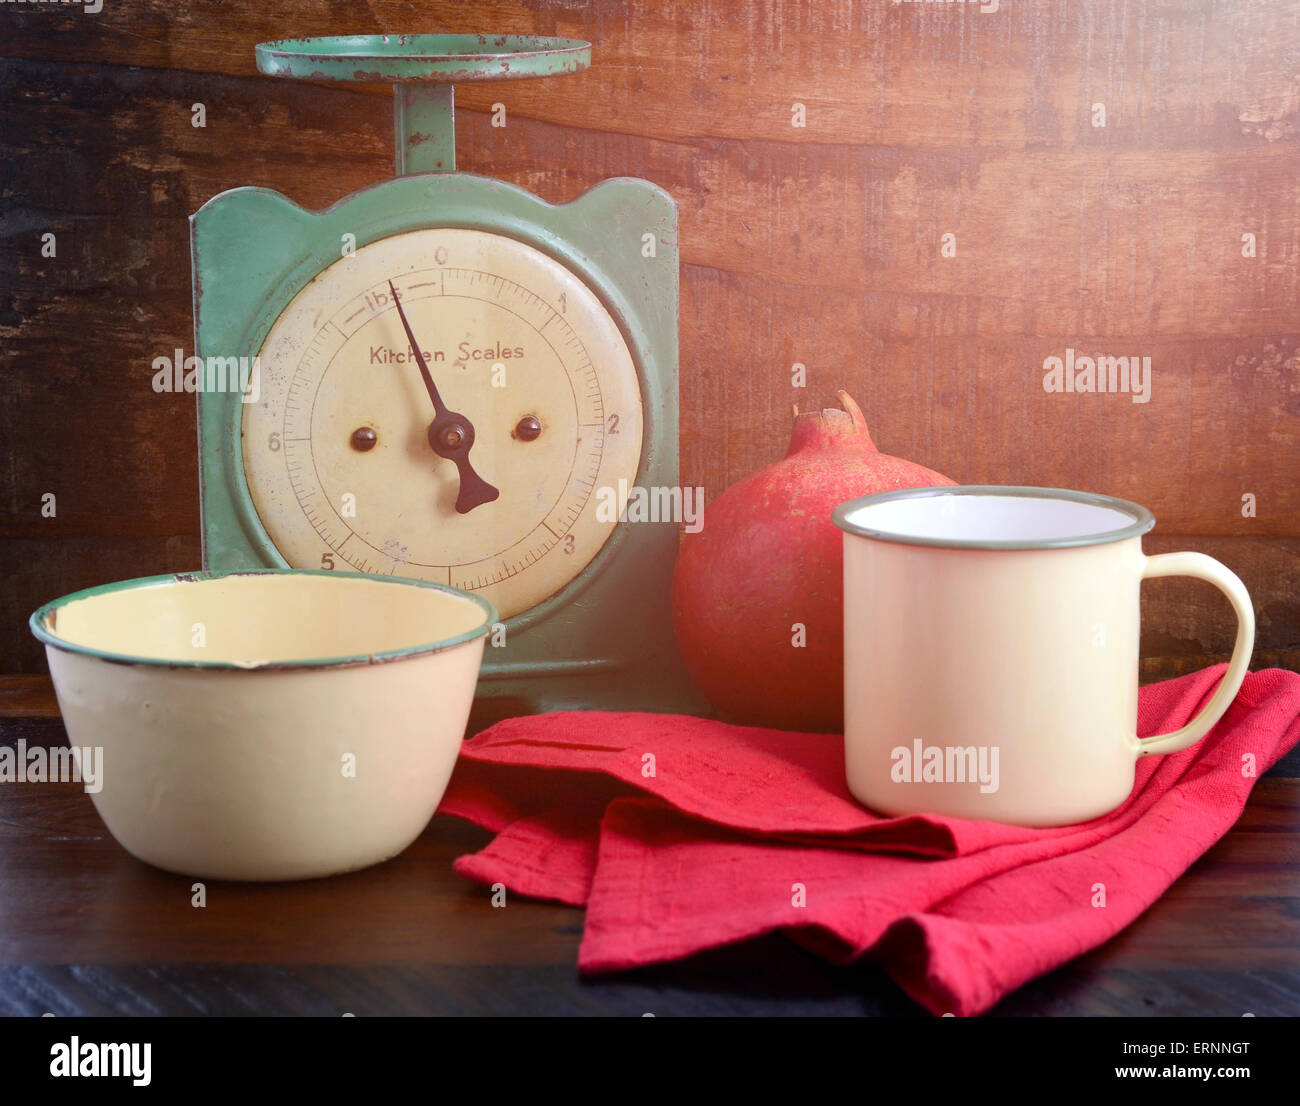 Vintage kitchen scales and tin cups and pans on dark reclaimed wood background, with applied vintage style filters - Stock Image